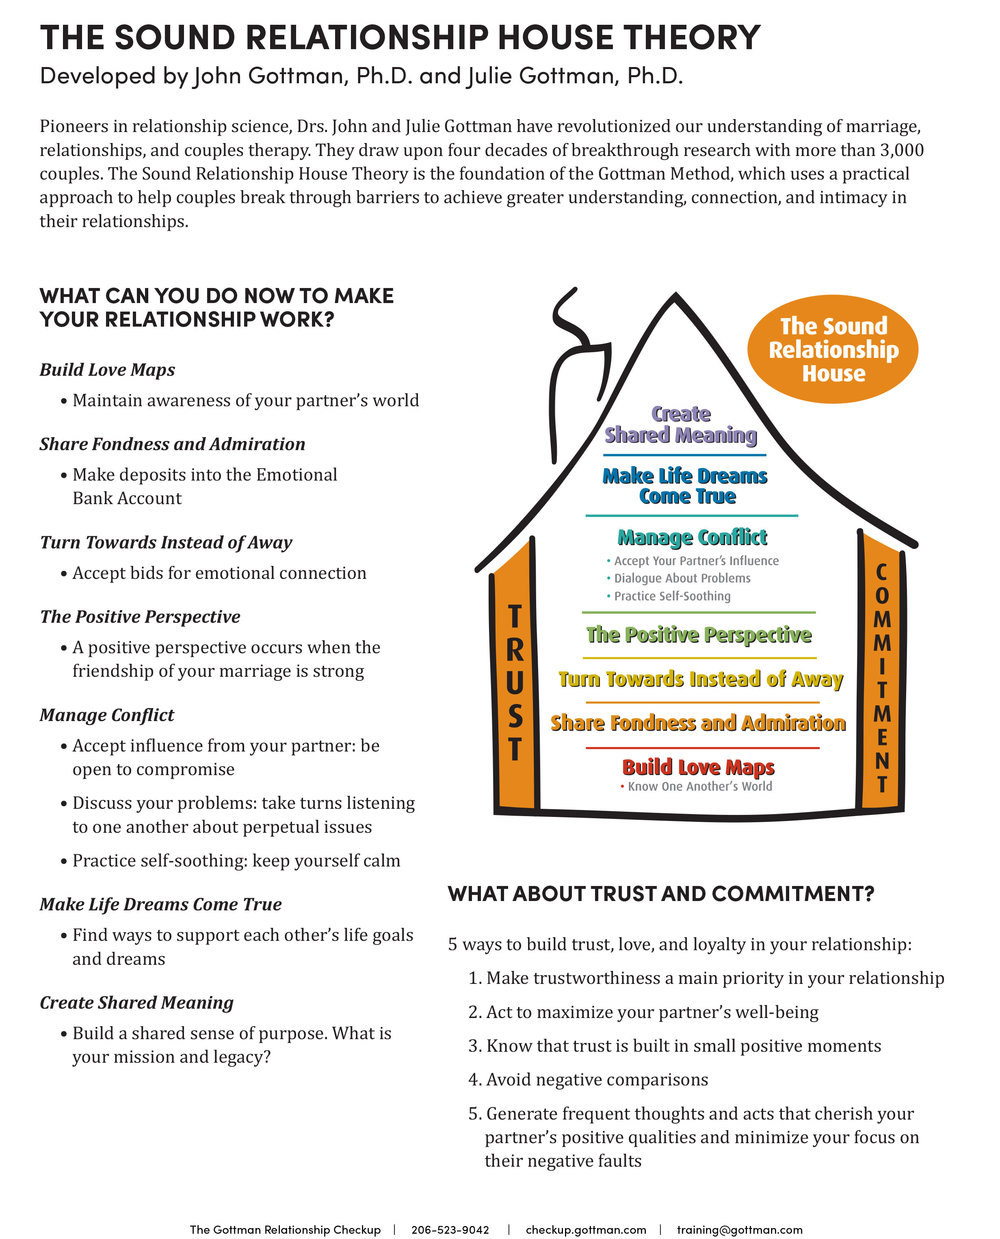 Sound Relationship House - The Sound Relationship House Theory was developed by John and Julie Gottman. It is a blueprint for healthy relationships with your partner. Click on image for PDF.